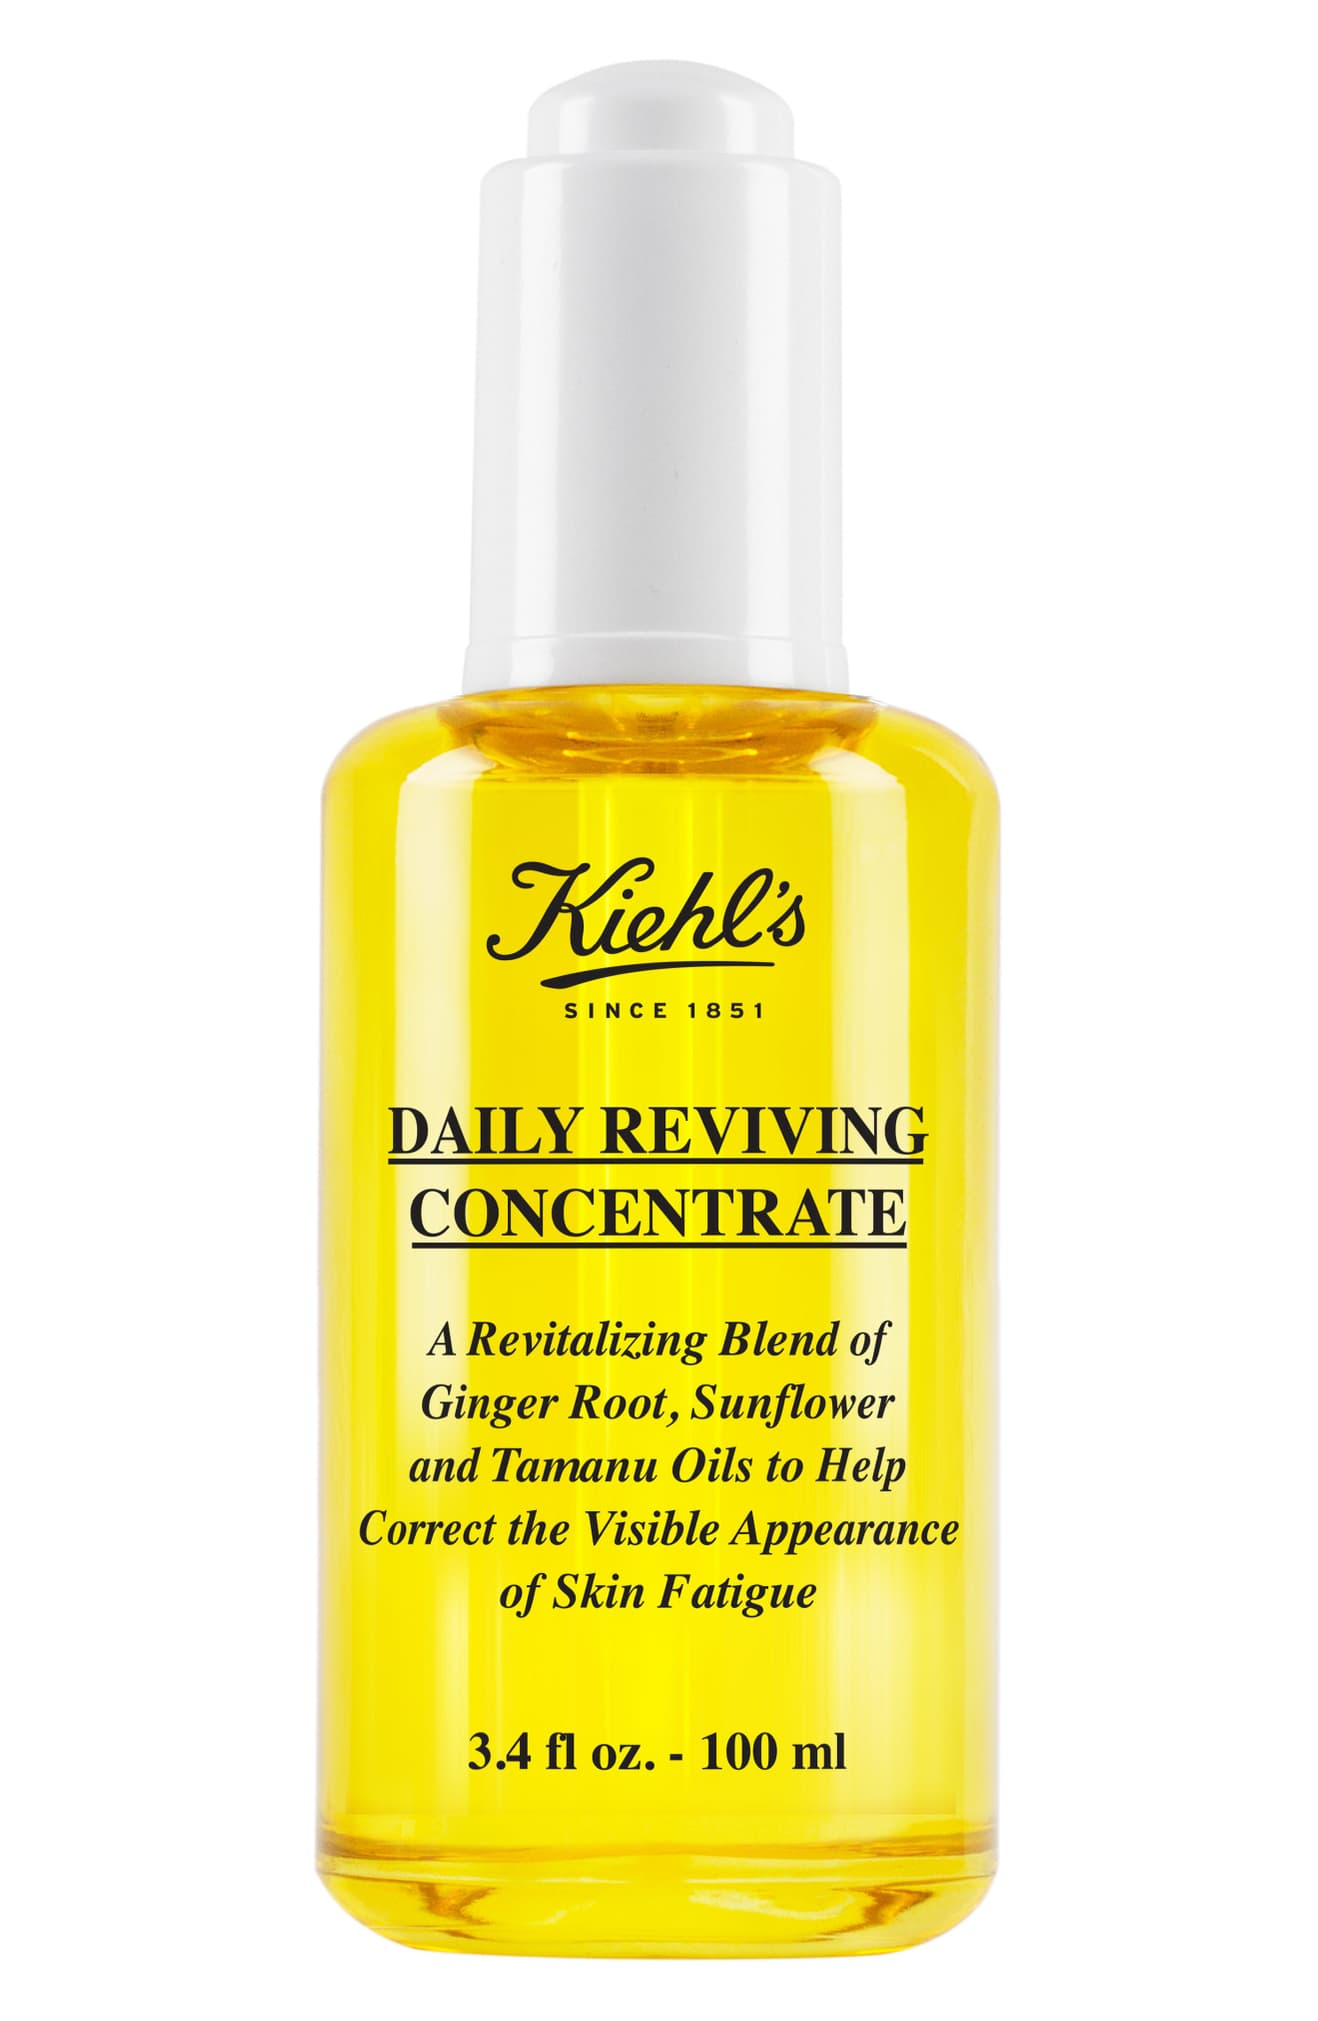 KIEHL'S SINCE 1851 Daily Reviving Concentrate Serum